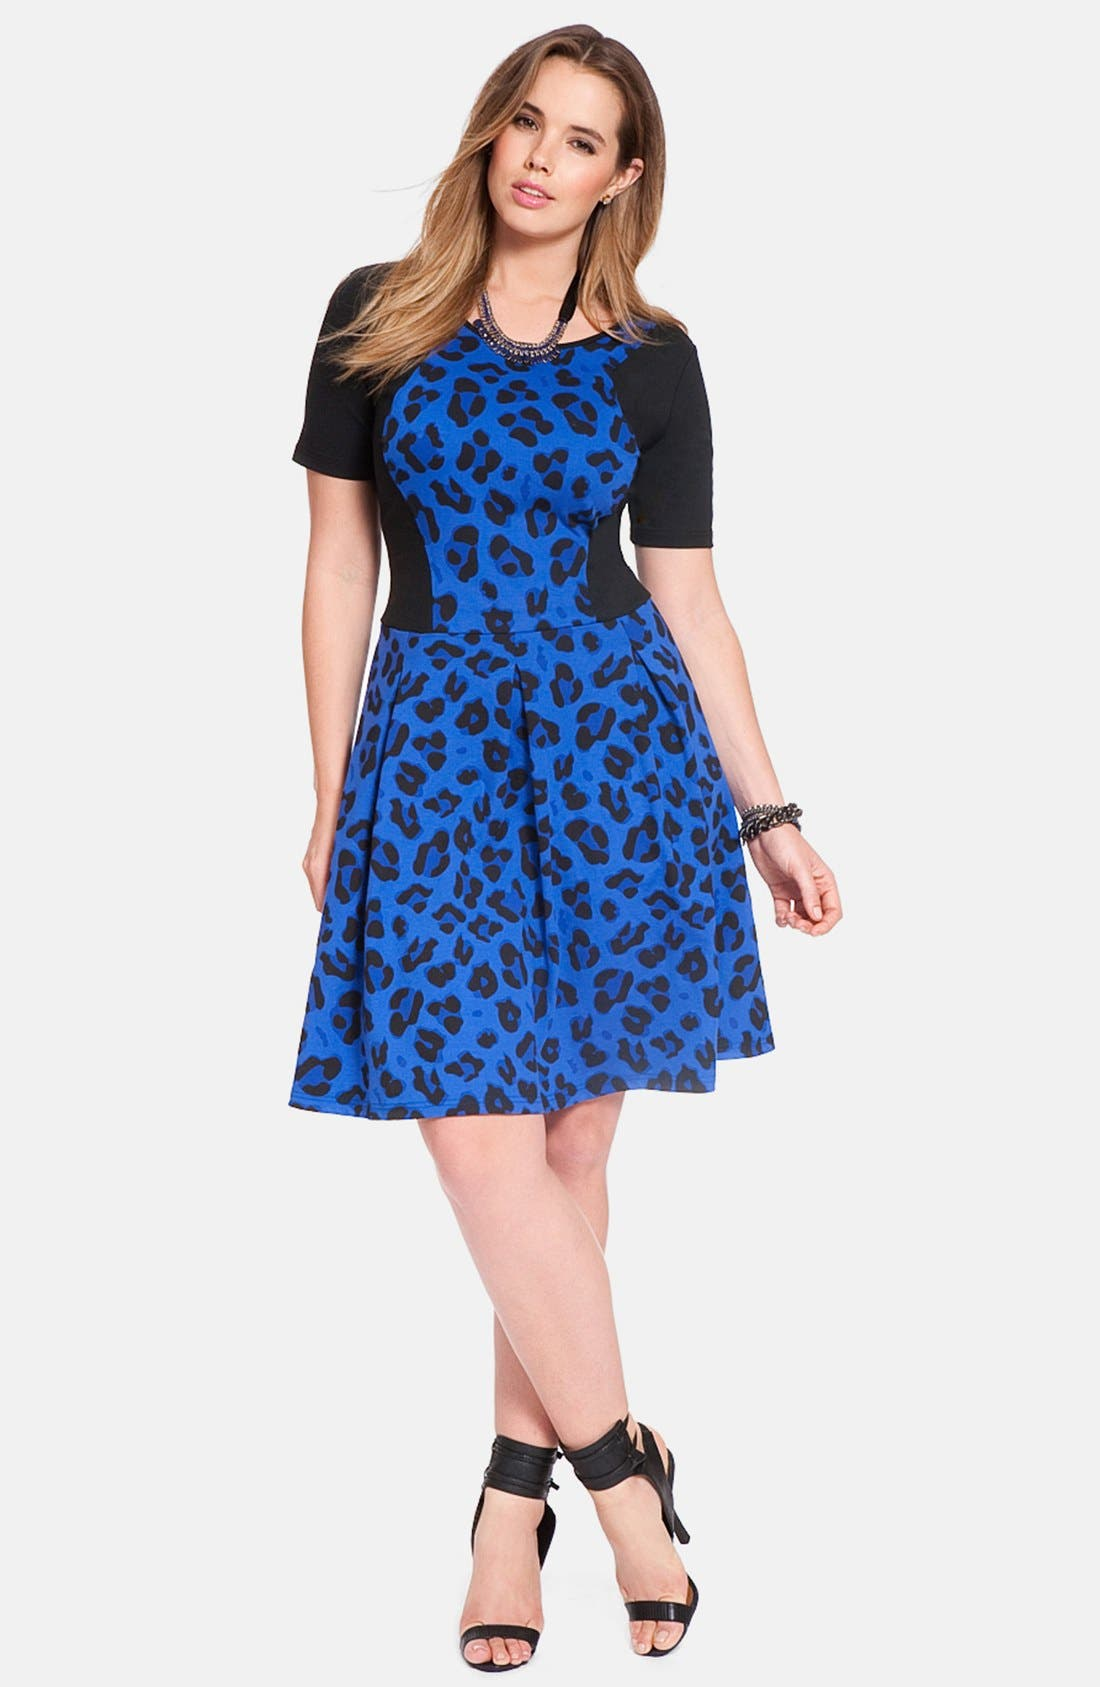 Alternate Image 3  - ELOQUII 'Curvy' Cheetah Print Fit & Flare Dress (Plus Size) (Nordstrom Exclusive)